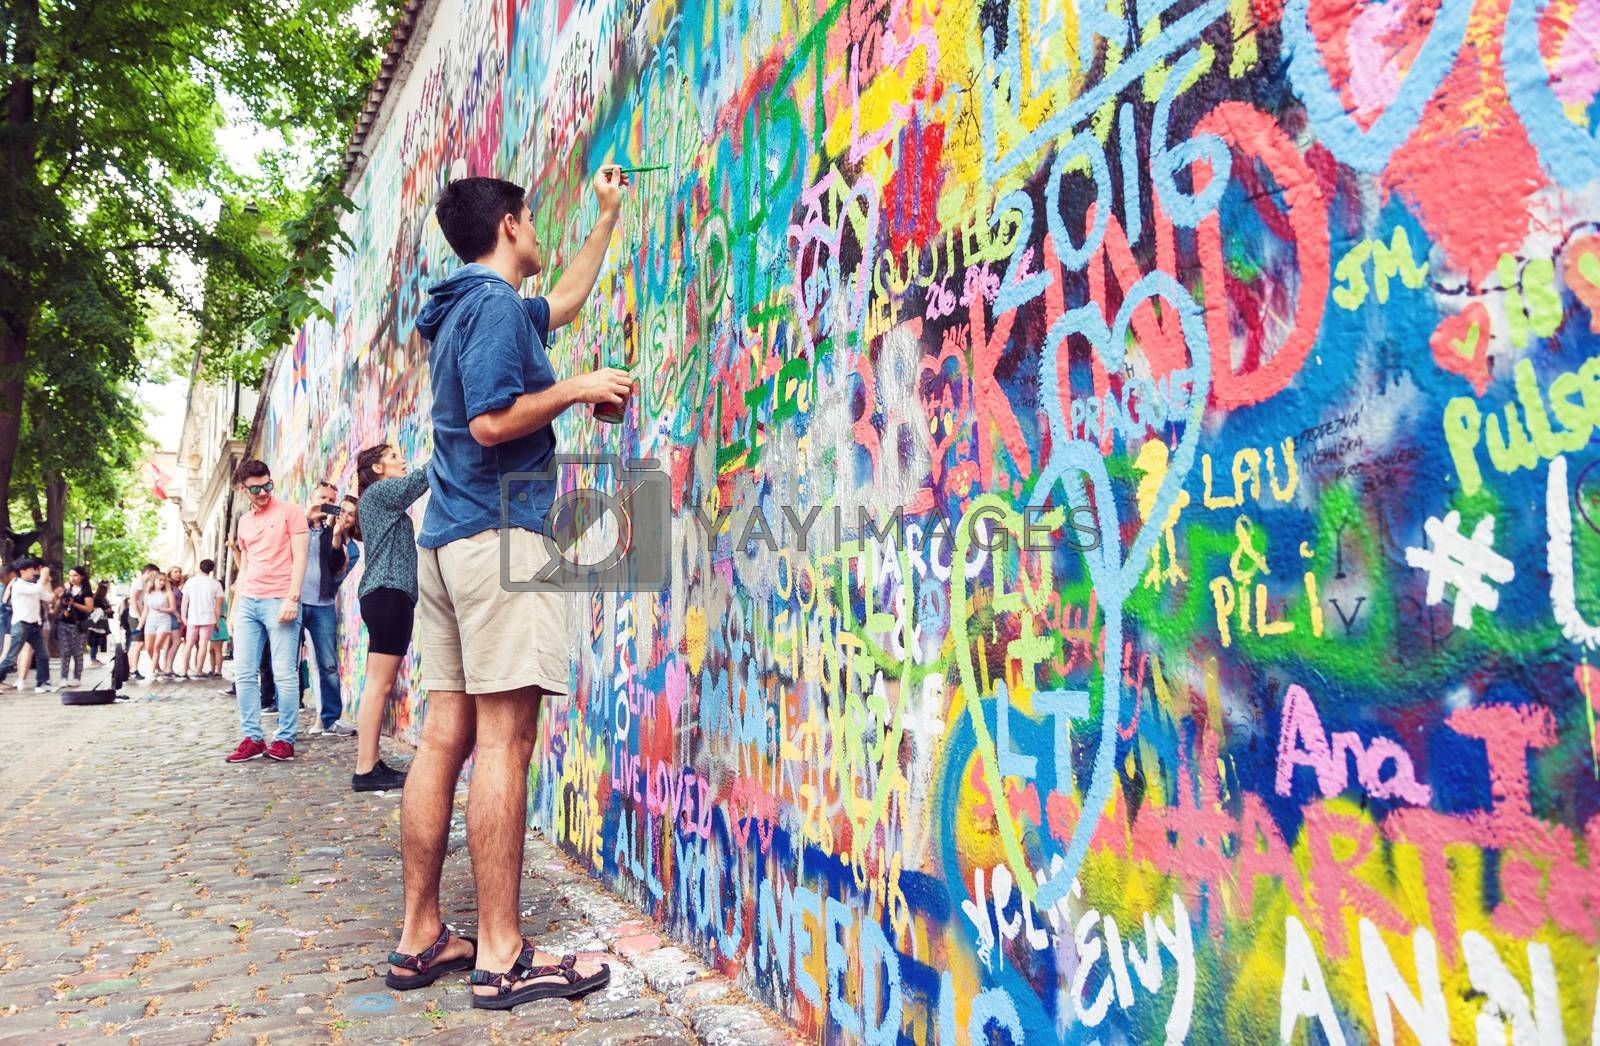 PRAGUE, CZECH REPUBLIC - JUNE 27, 2016: Young man painting the famous Lennon graffiti wall in old town of Prague, Czech Republic